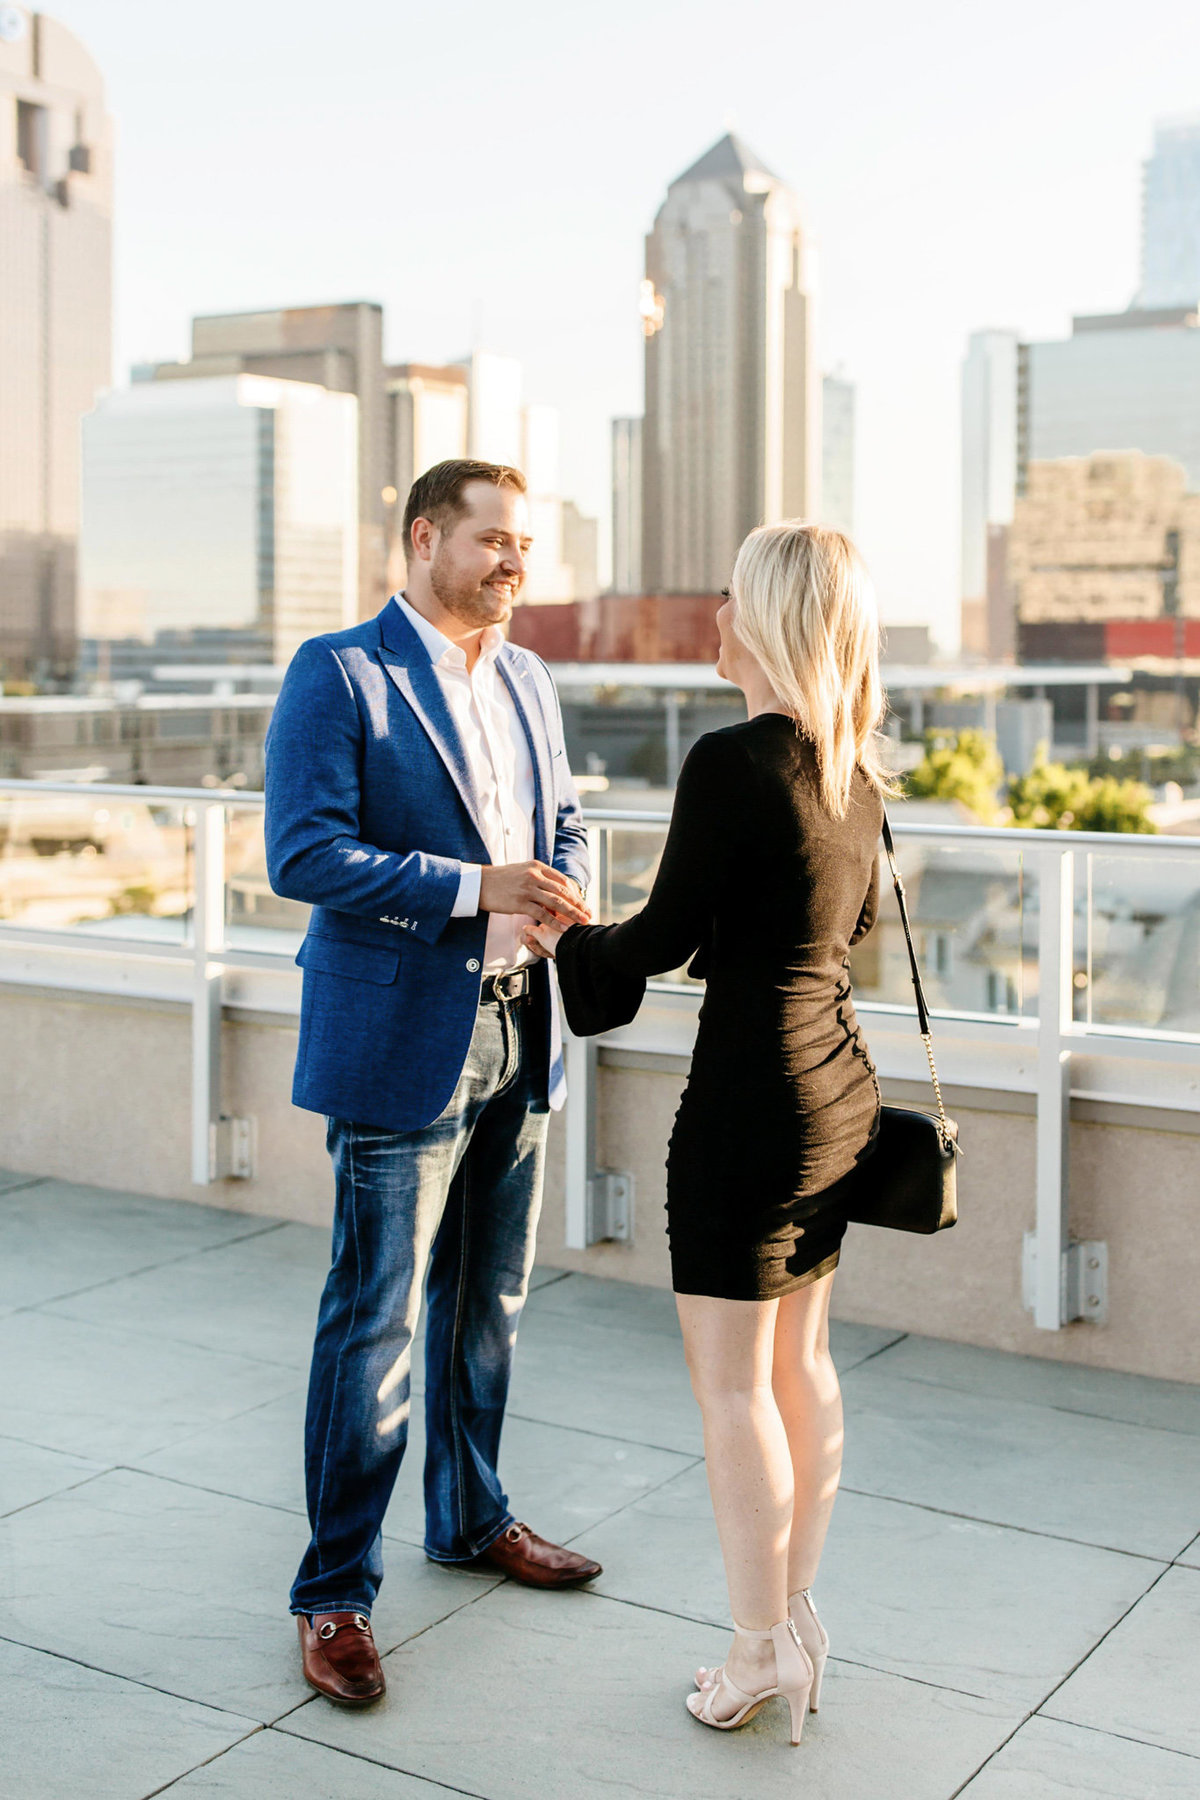 Eric & Megan - Downtown Dallas Rooftop Proposal & Engagement Session-21